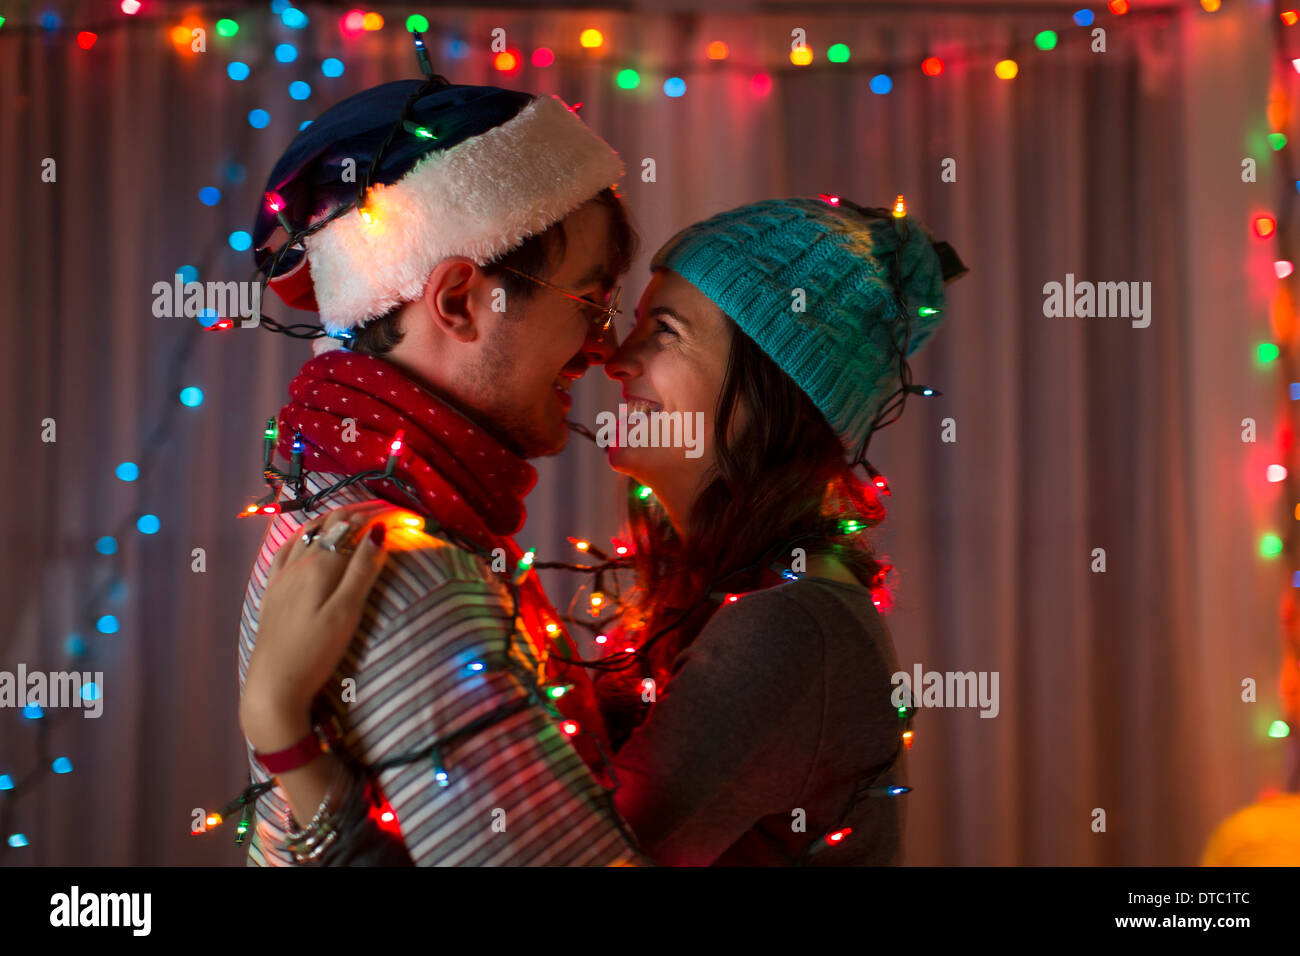 Romantic young couple wrapped in decorative lights at christmas Stock Photo